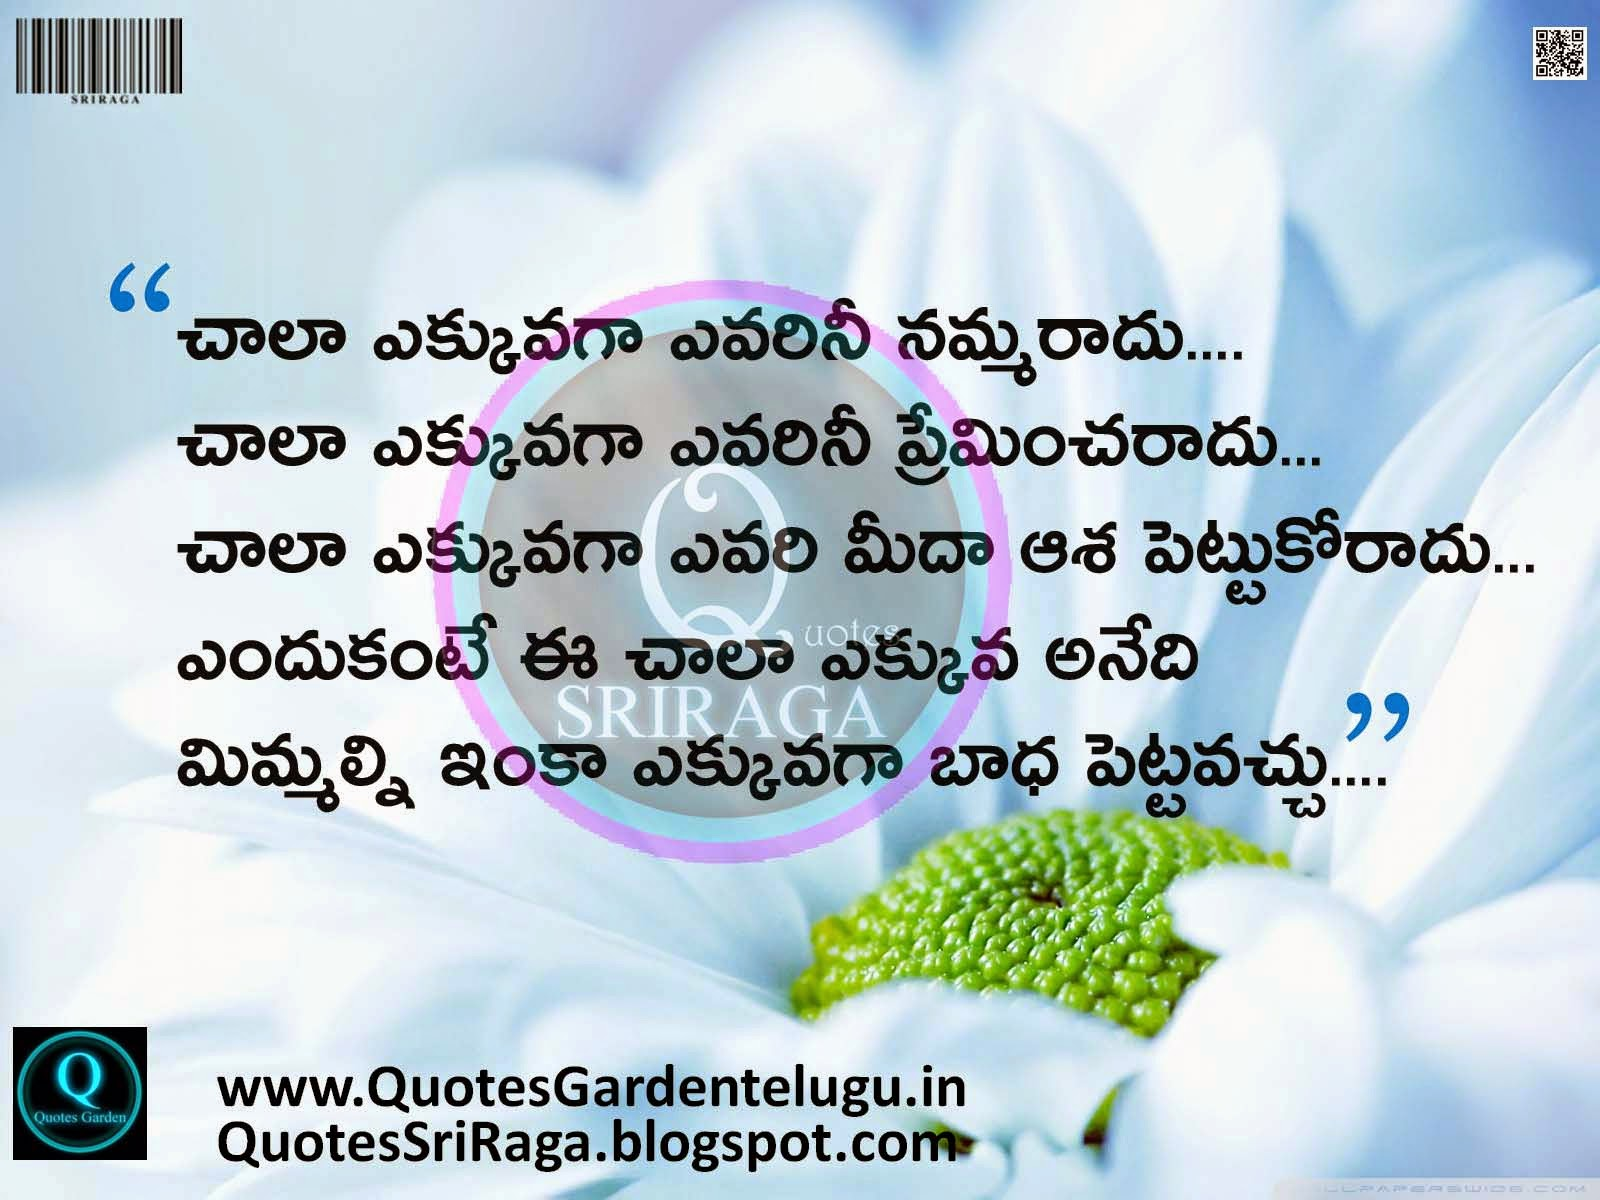 Famous Telugu Top Inspirational Quotes Alone Quotes feelings images